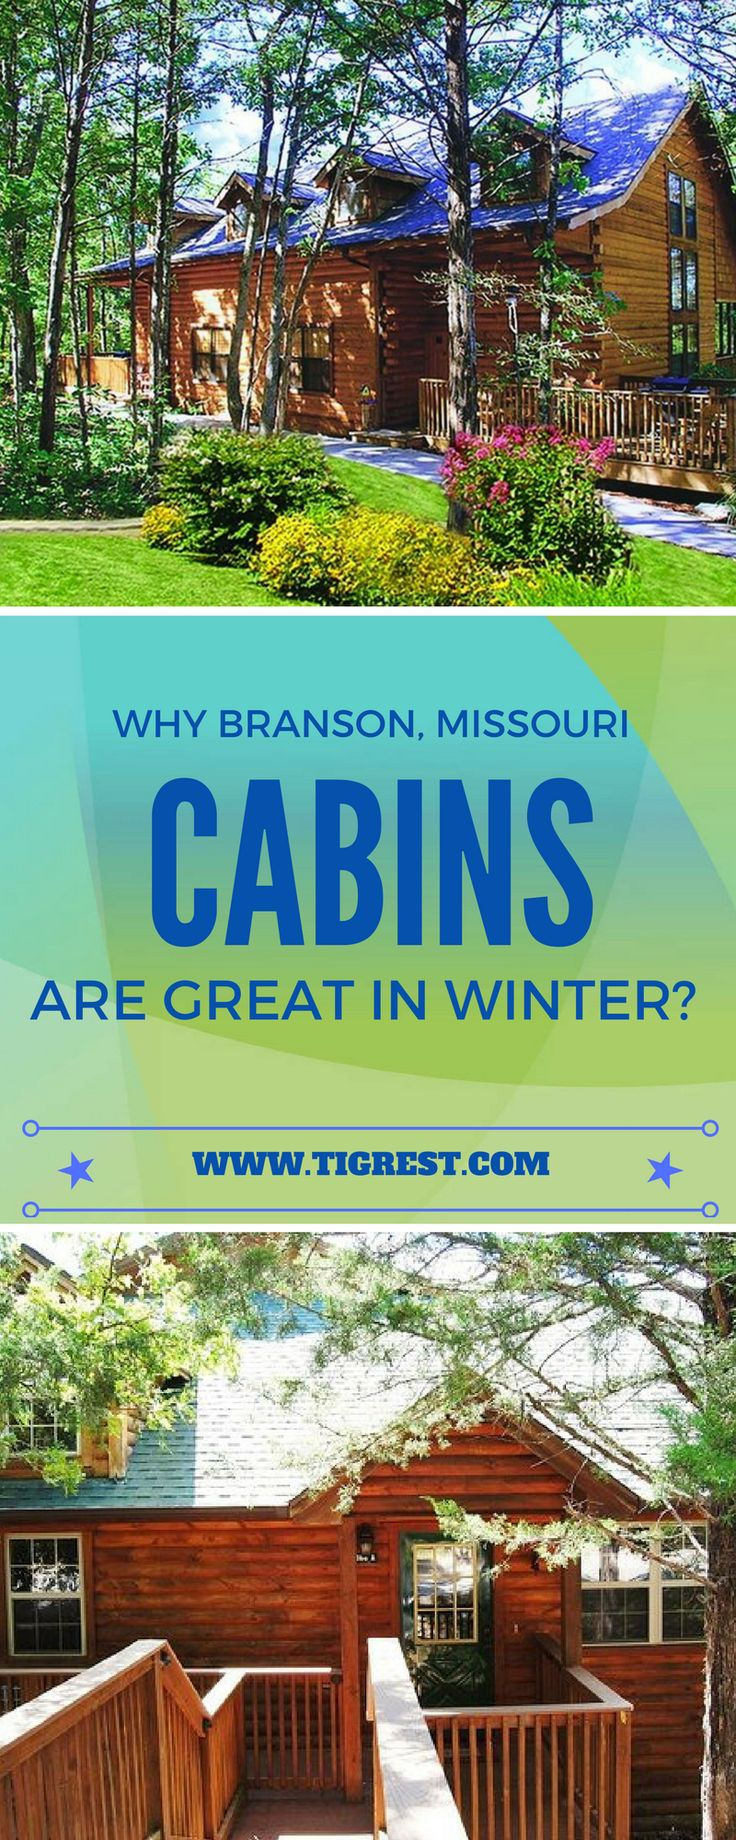 33 best United States: MISSOURI images on Pinterest | Family ...